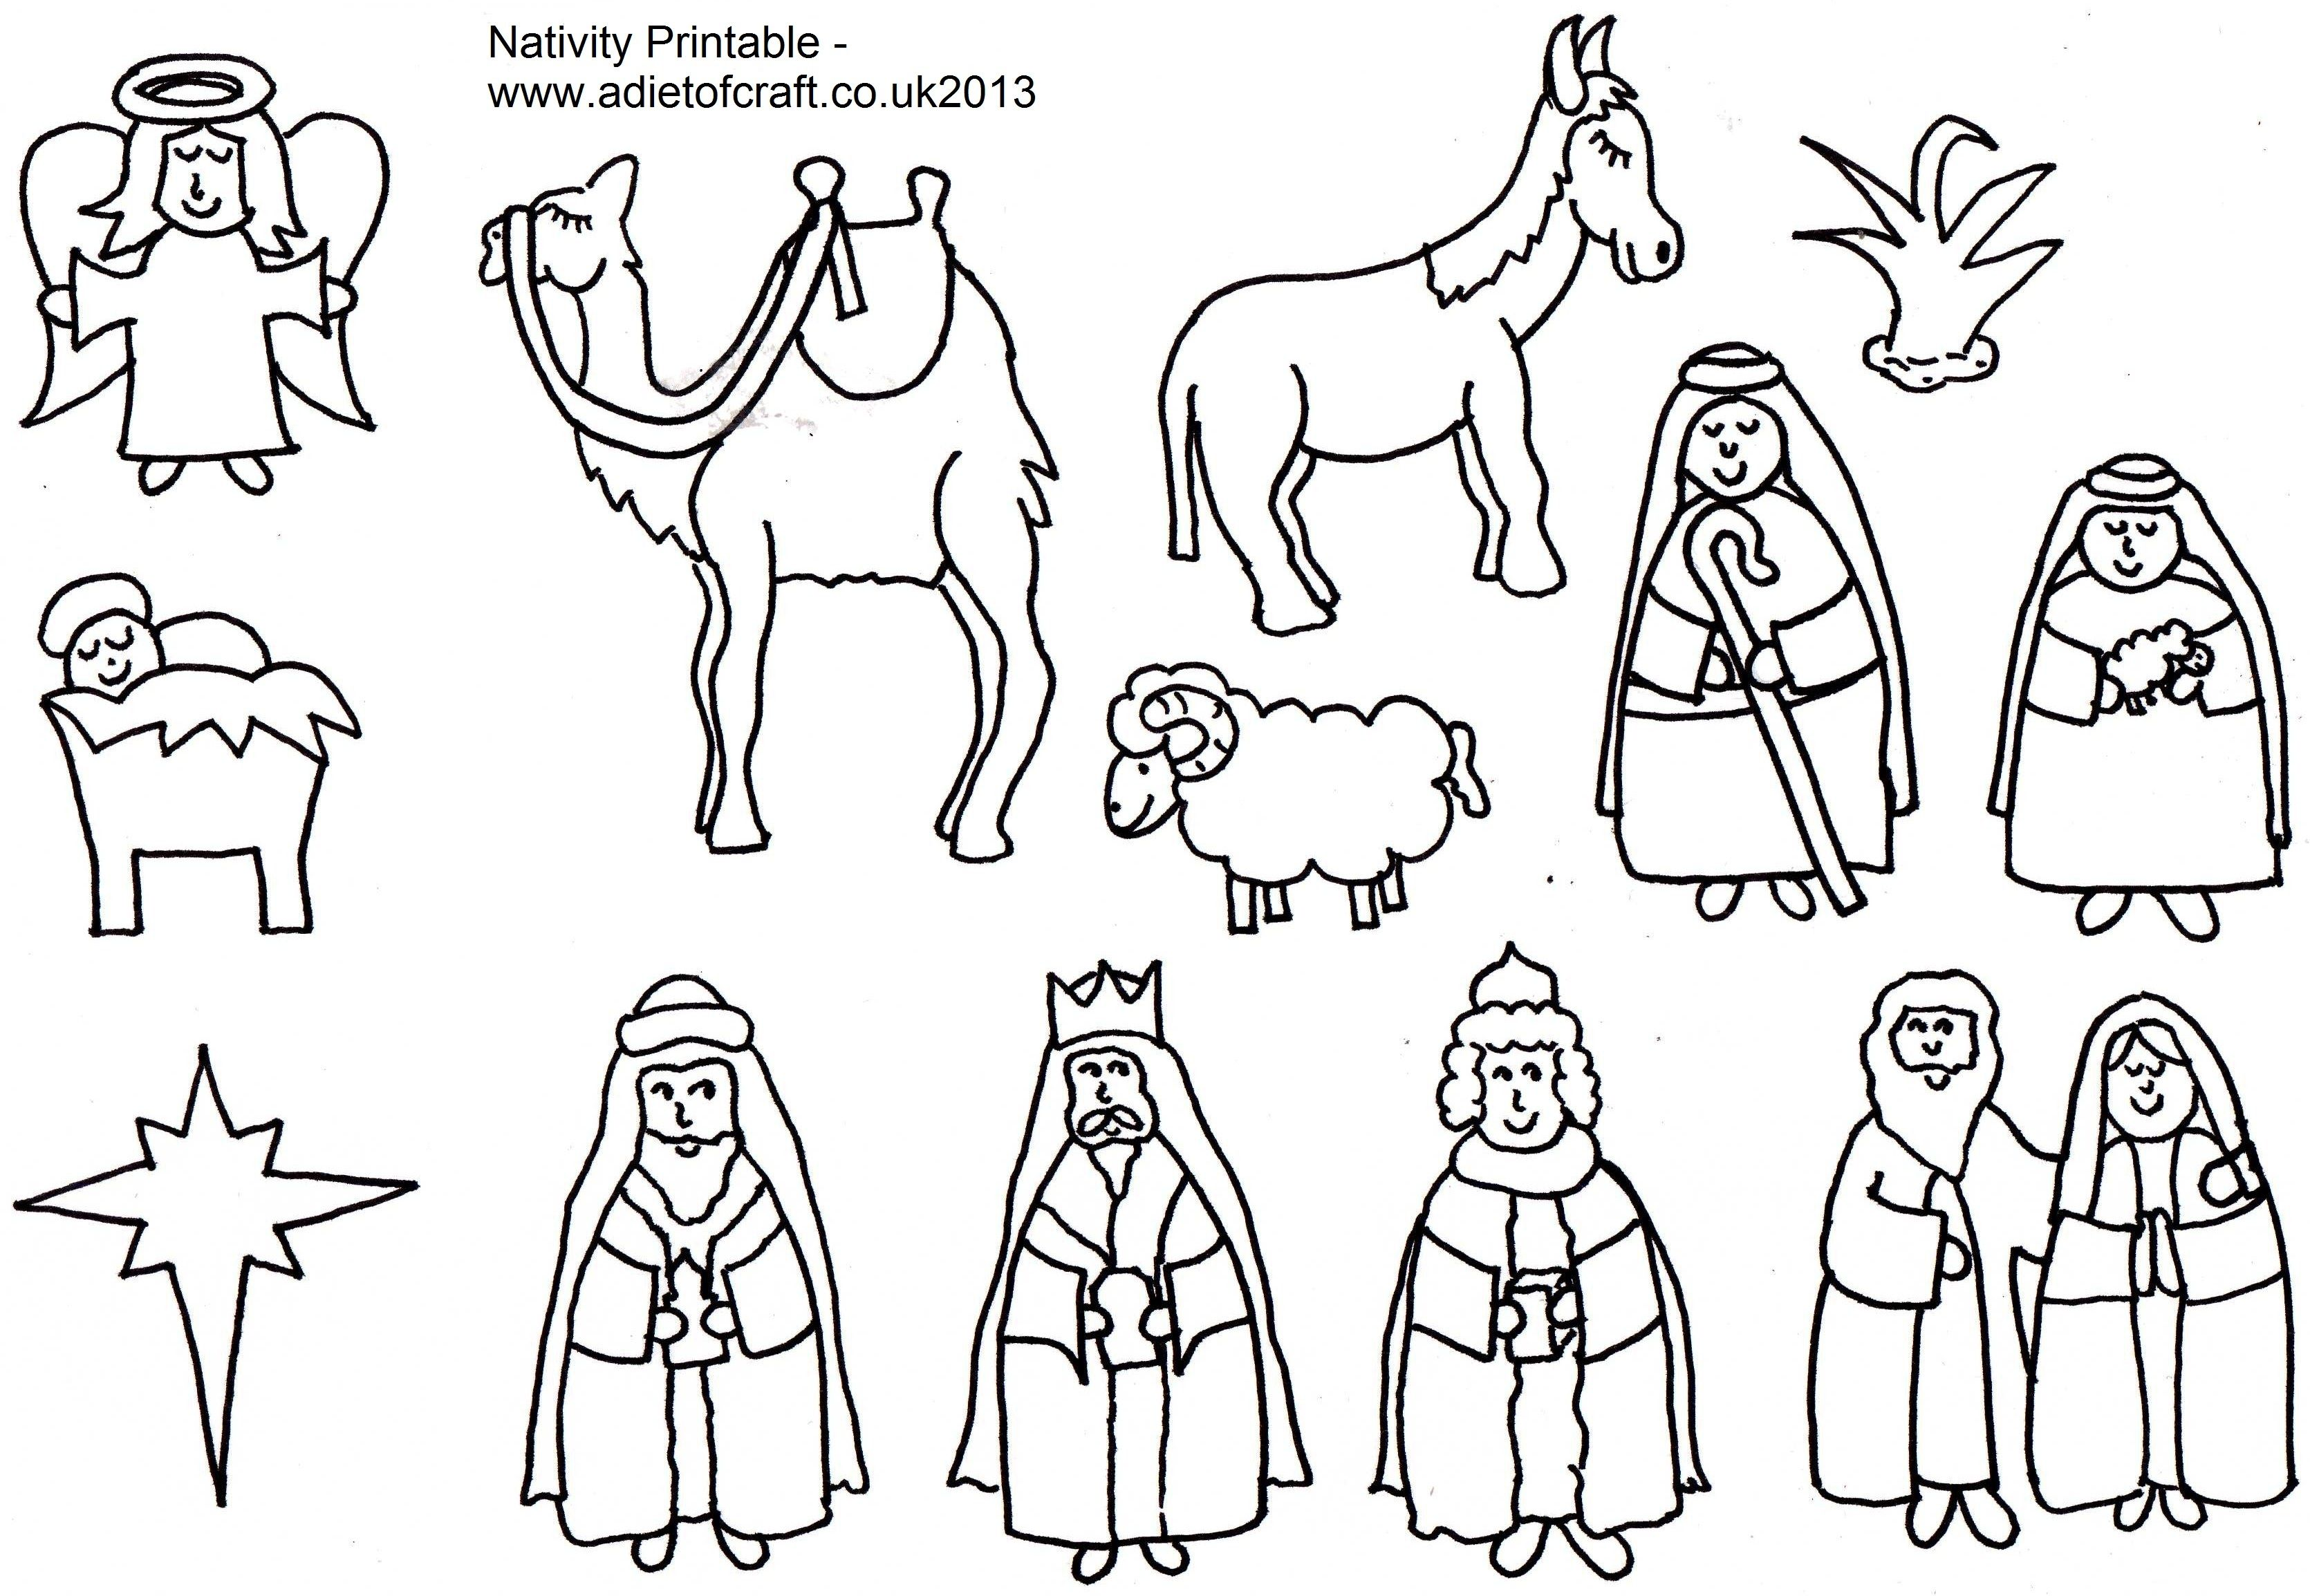 Free Printable Nativity For Christmas Nativity Coloring Nativity Story Printable Nativity Coloring Pages